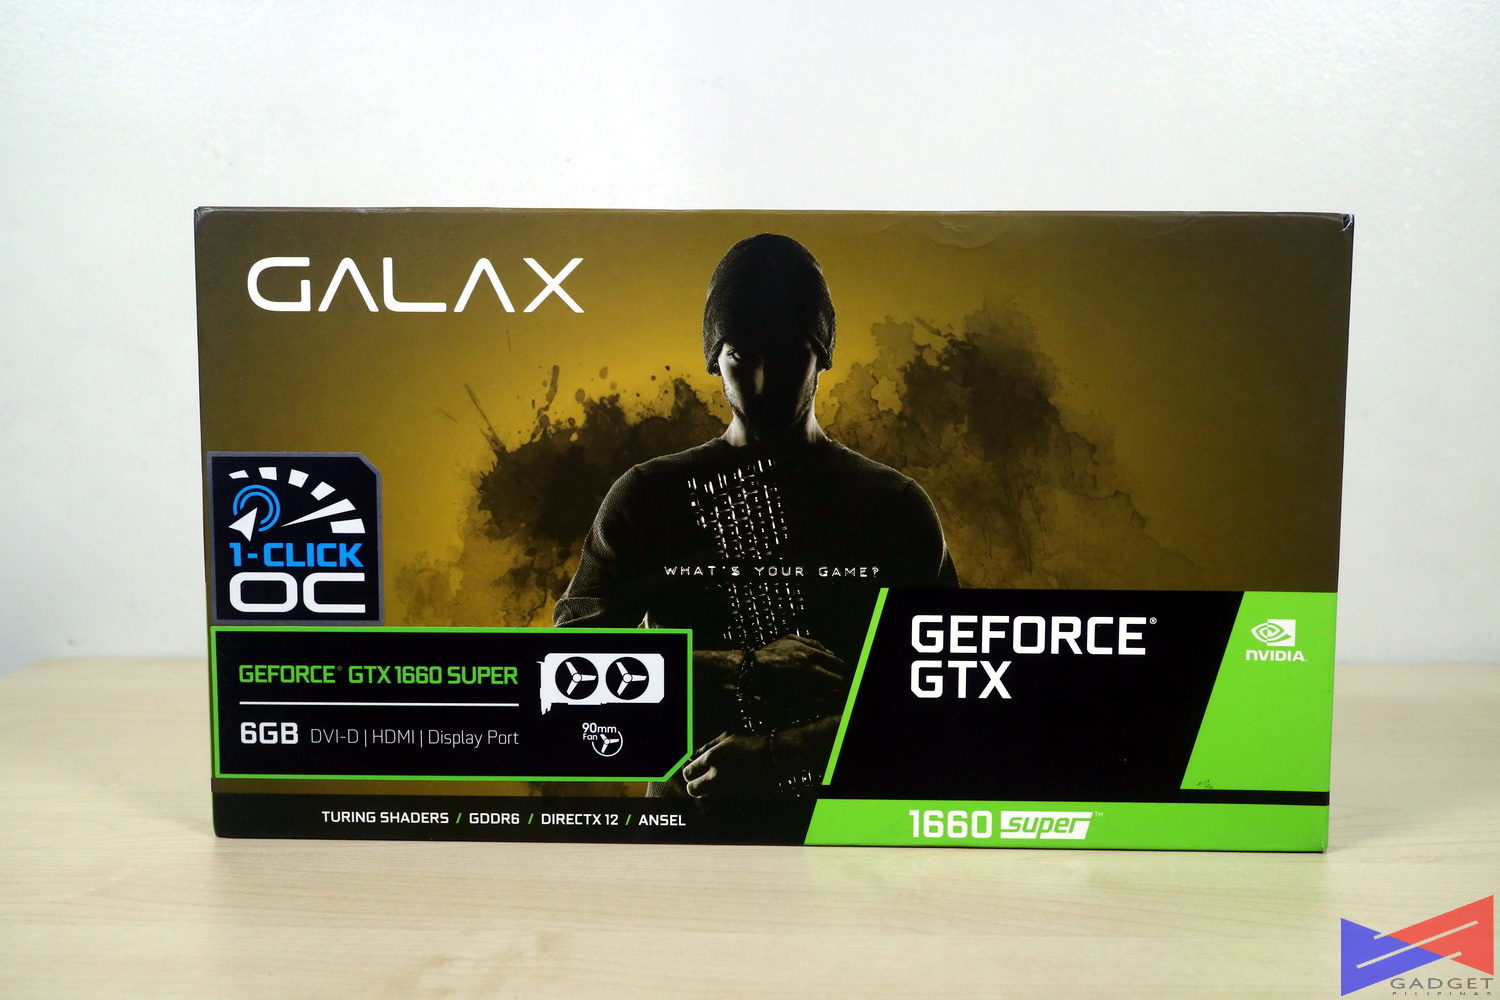 Galax GTX 1660 Super, Galax GTX 1660 SUPER 1-Click OC Graphics Card Review, Gadget Pilipinas, Gadget Pilipinas